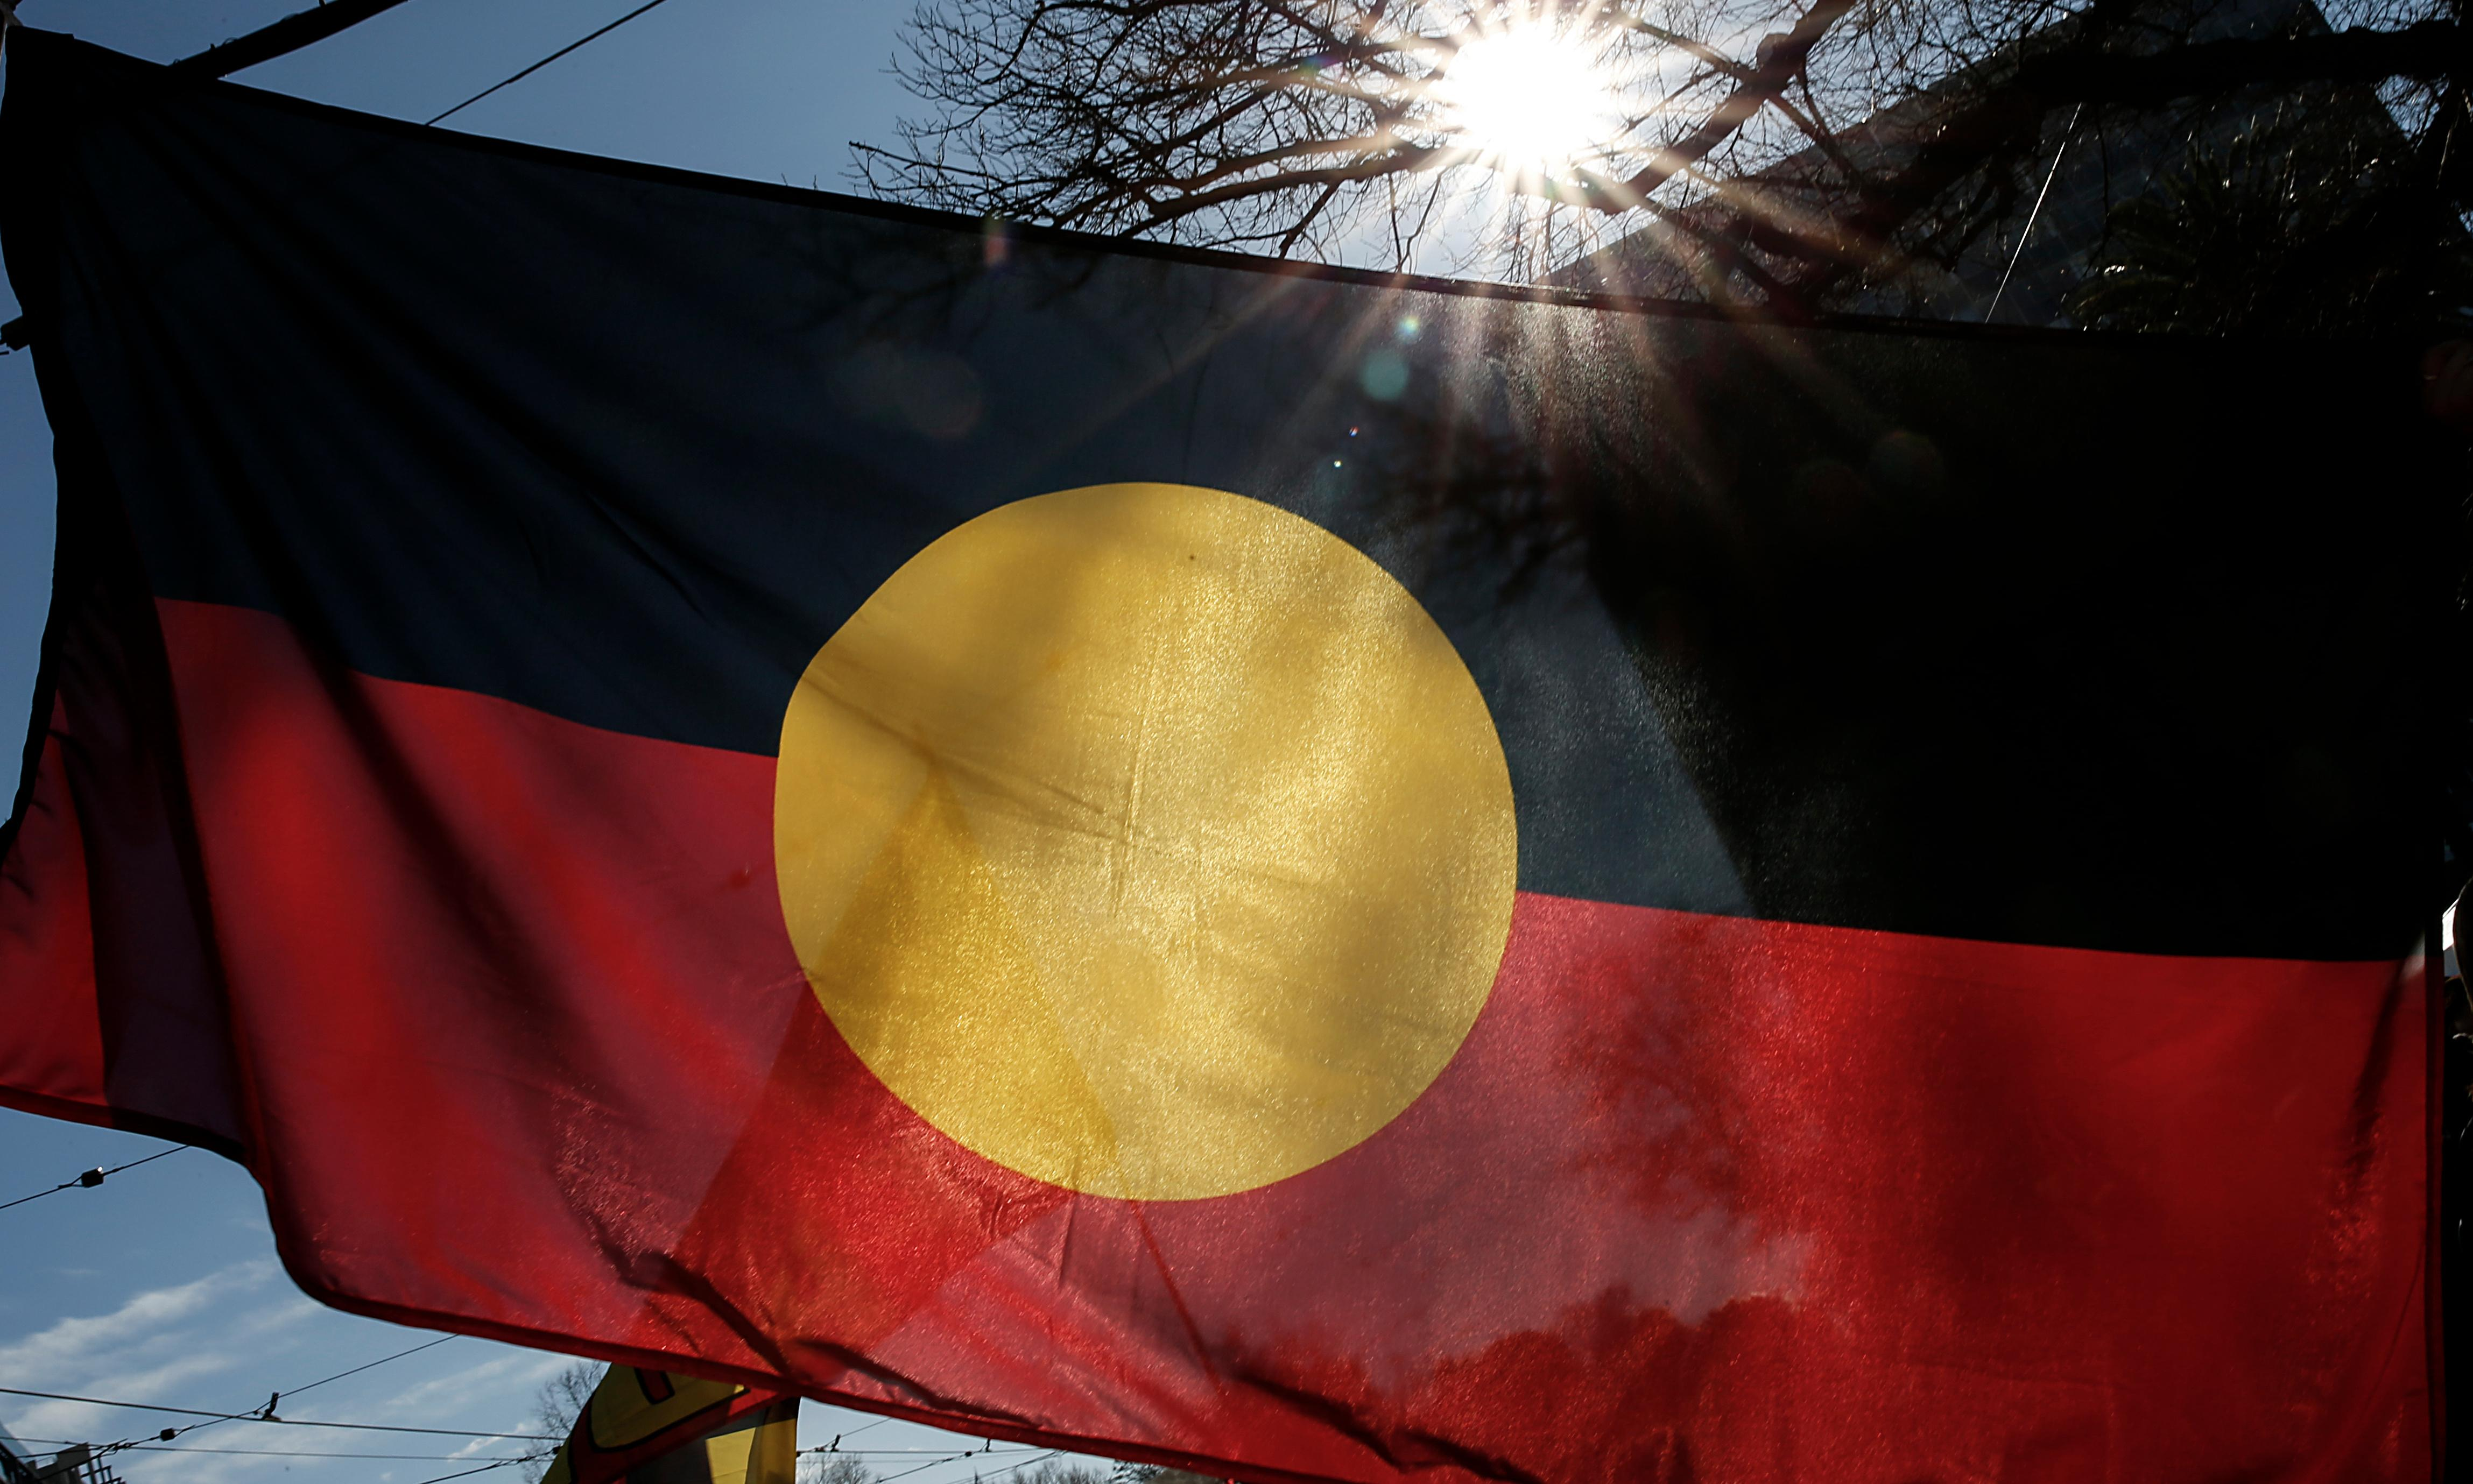 I'm often labelled as an 'Aboriginal writer' but I'm more than a category